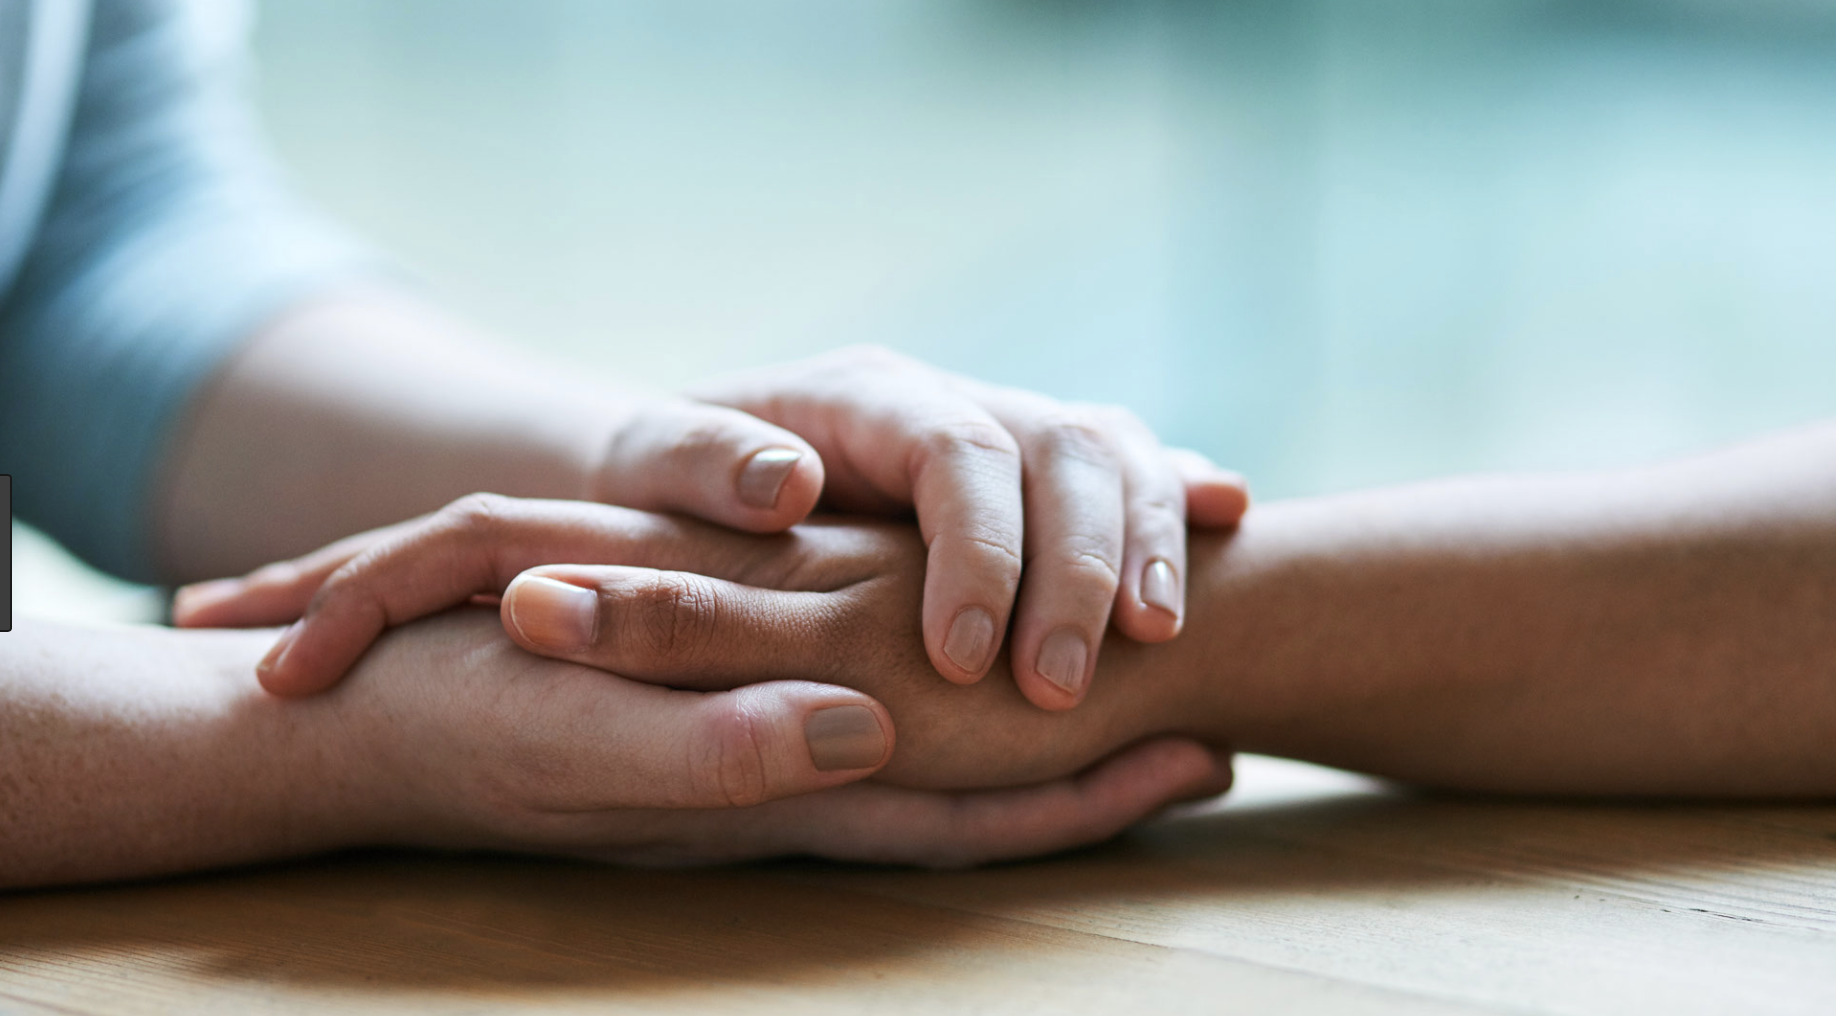 Caring person holding hands